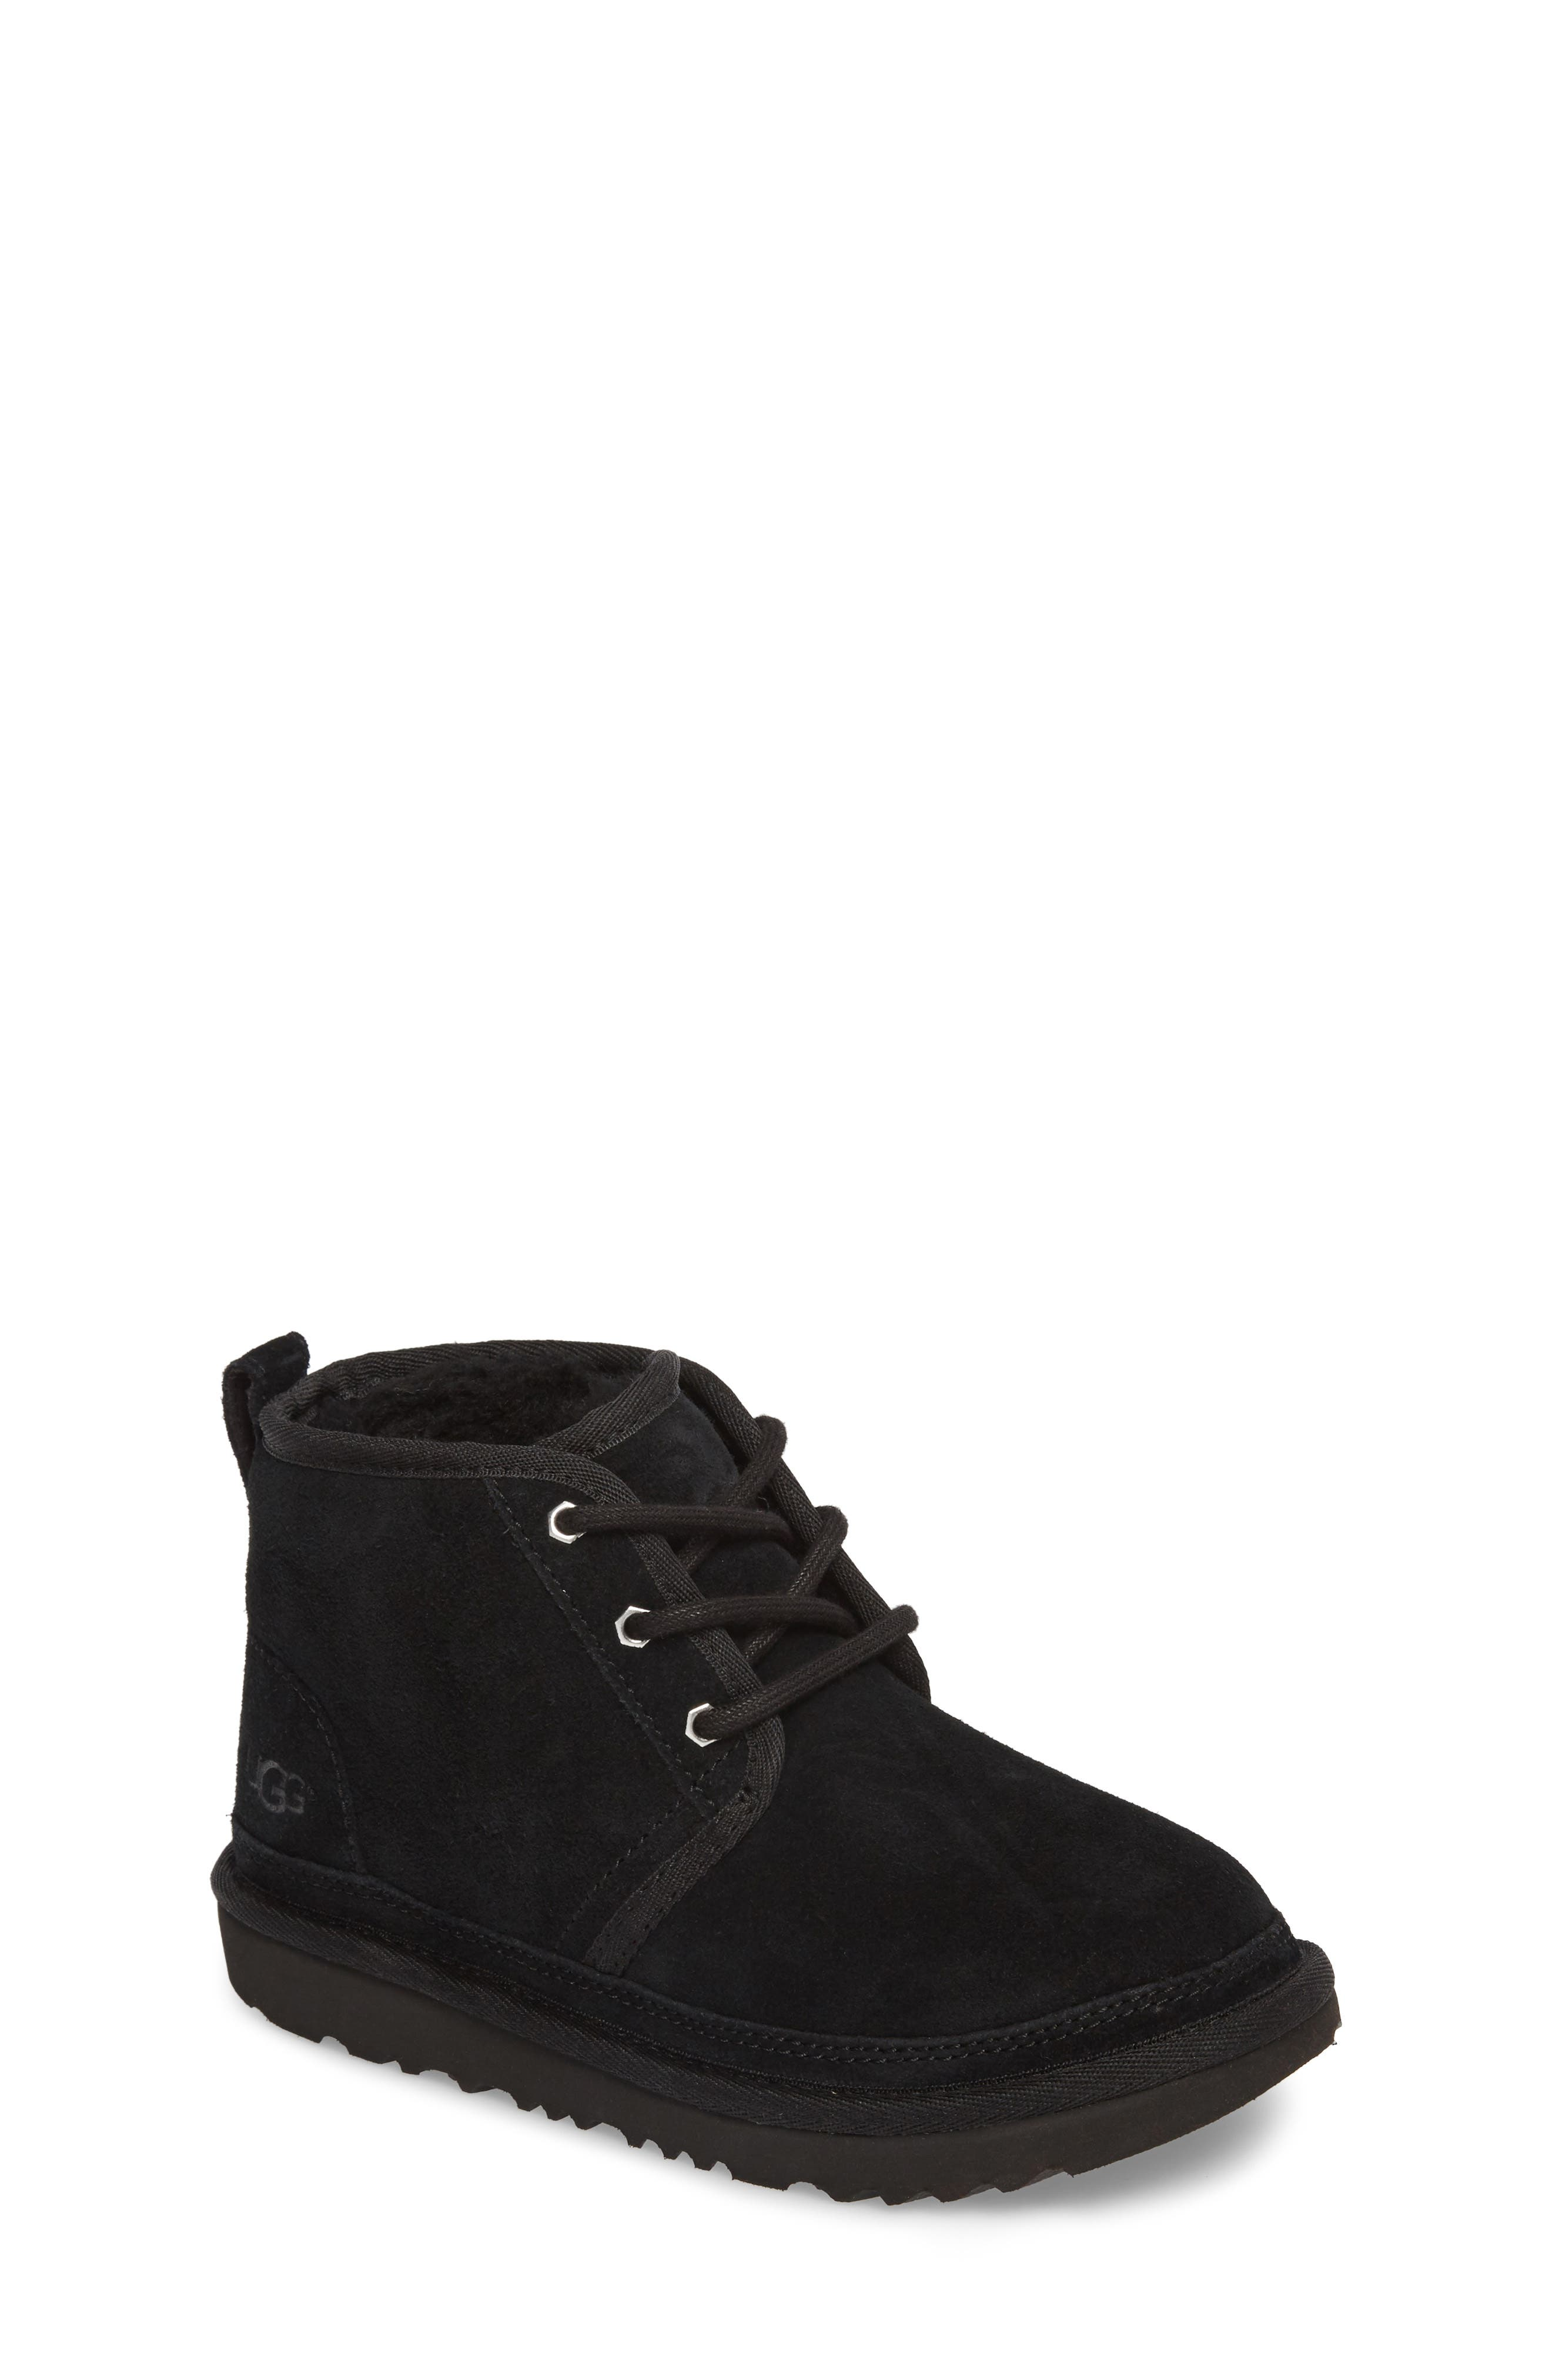 Neumel II Water Resistant Chukka Boot,                         Main,                         color, Black